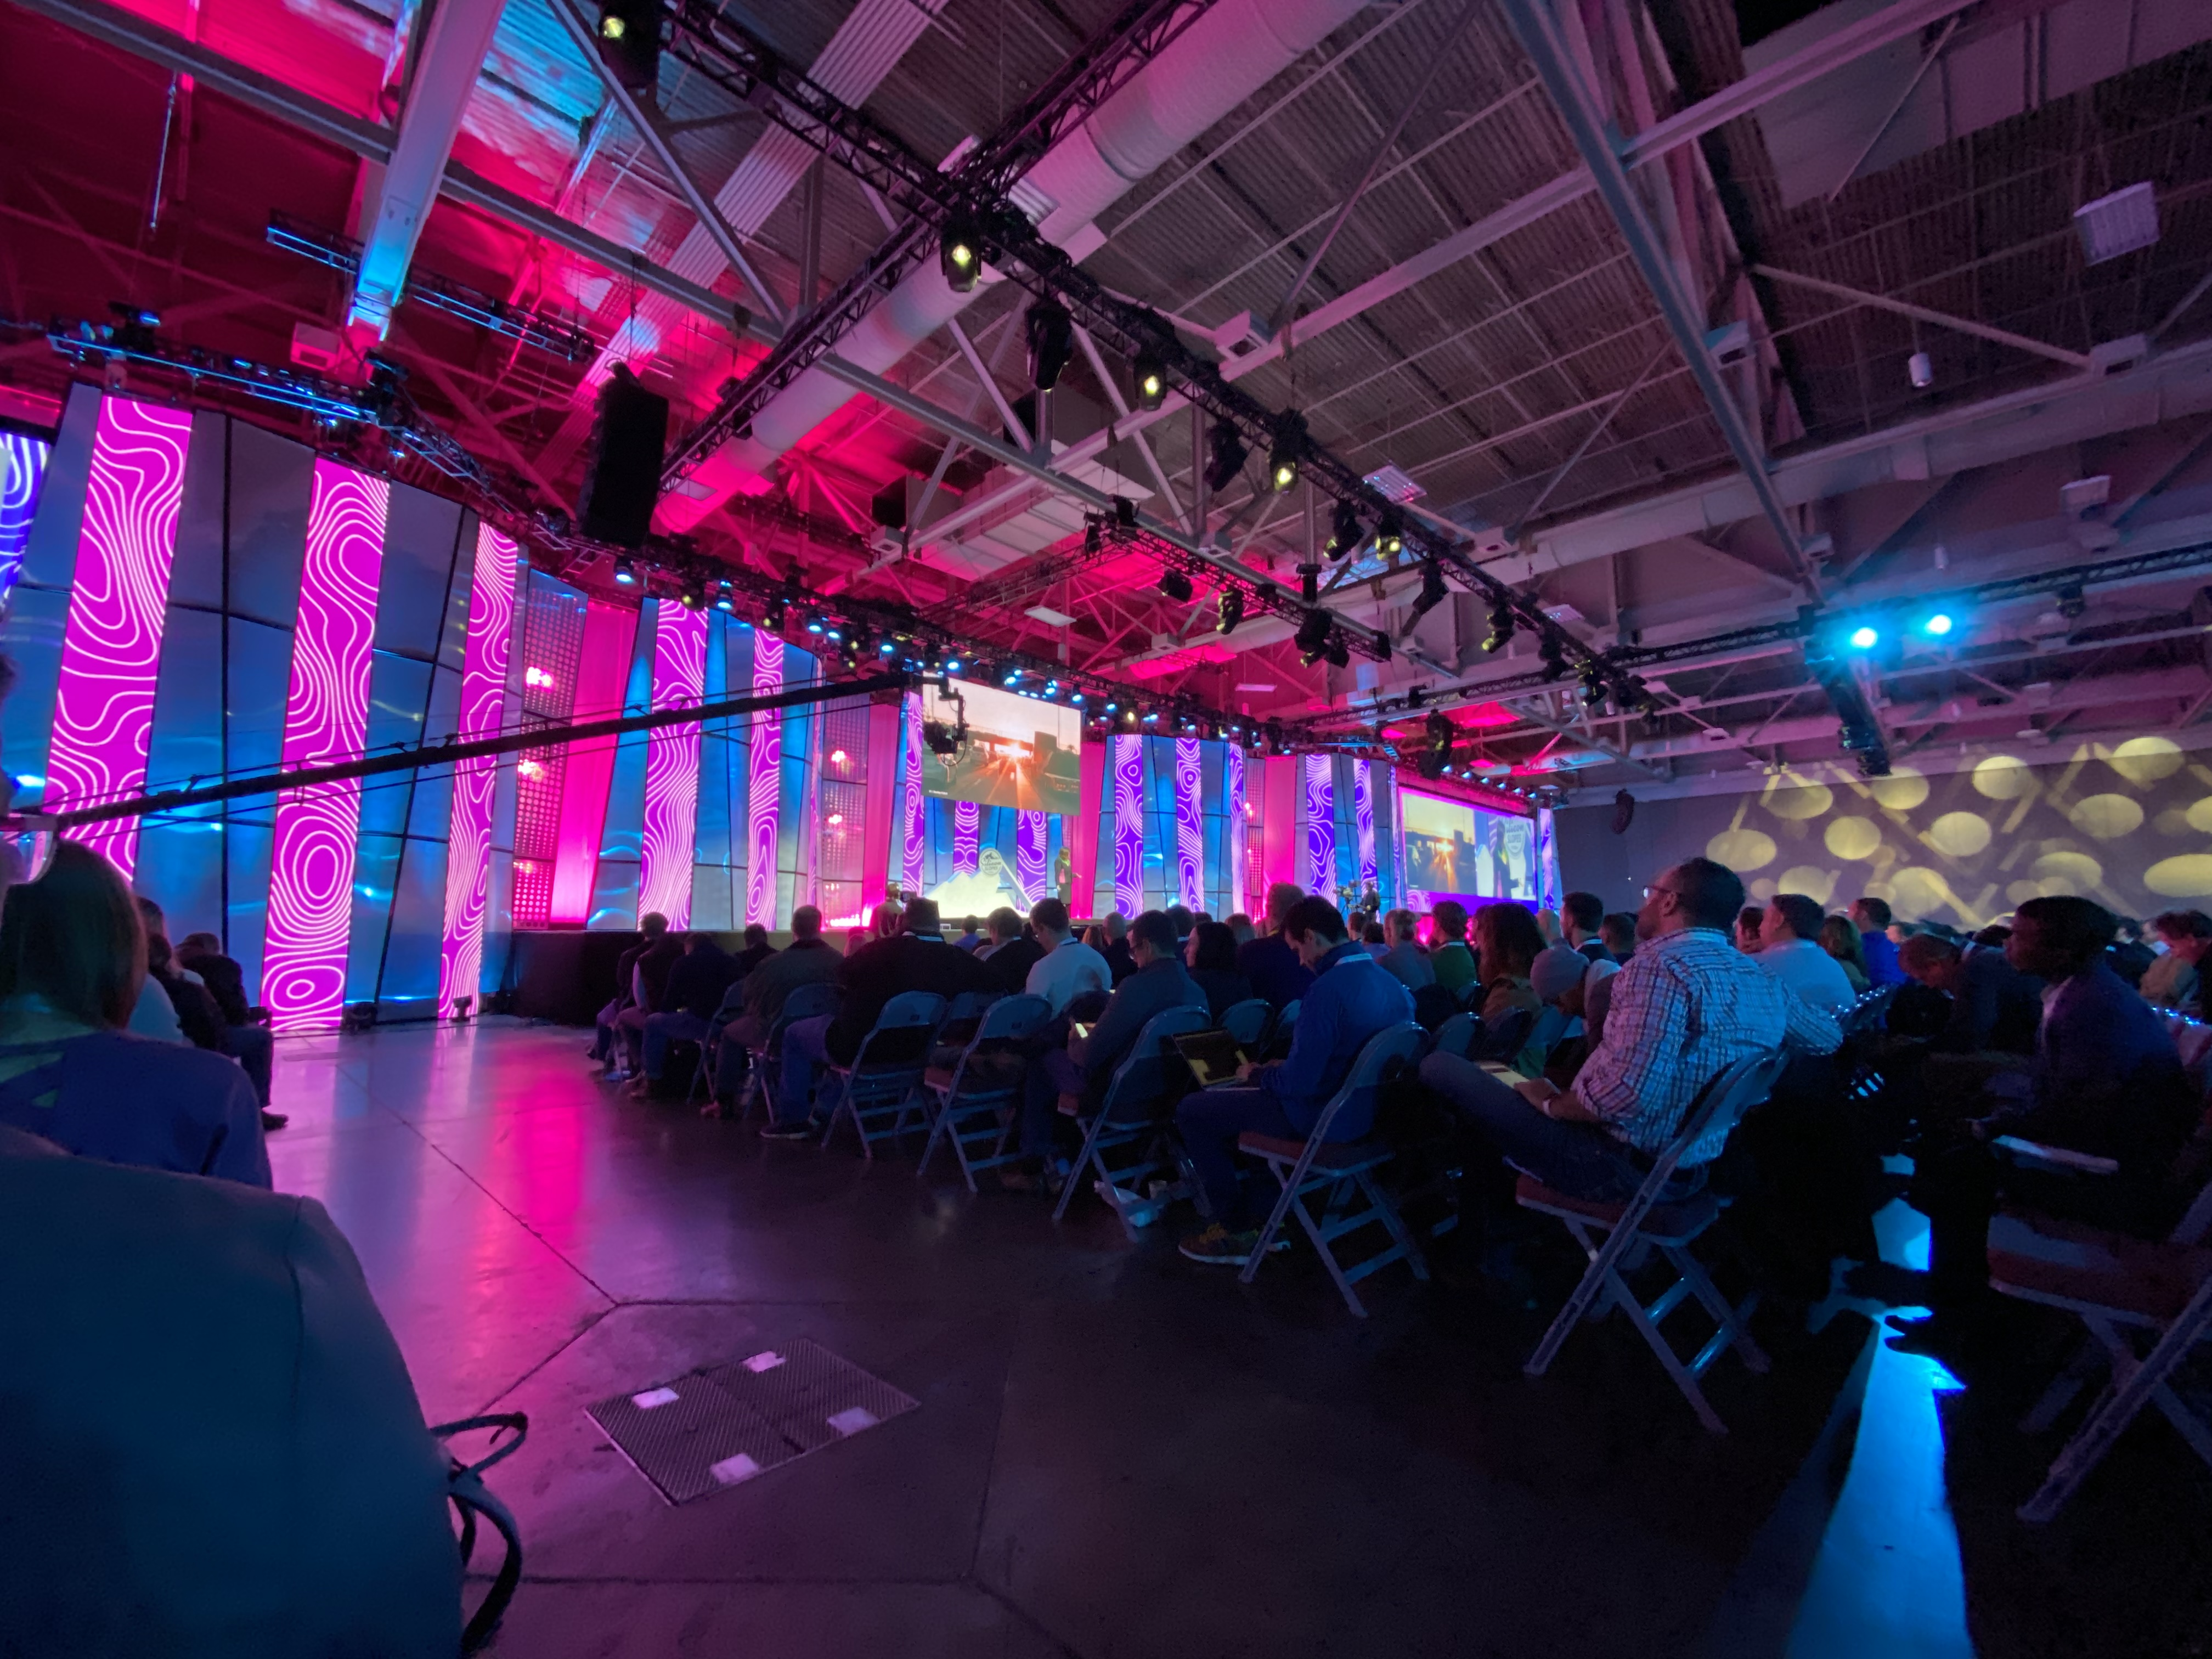 HubSpot CEO Brian Halligan talked about the late Clayton Christensen at the Silicon Slopes tech summit, Friday, Jan. 31, 2020, at the Salt Palace Convention Center in Salt Lake City.